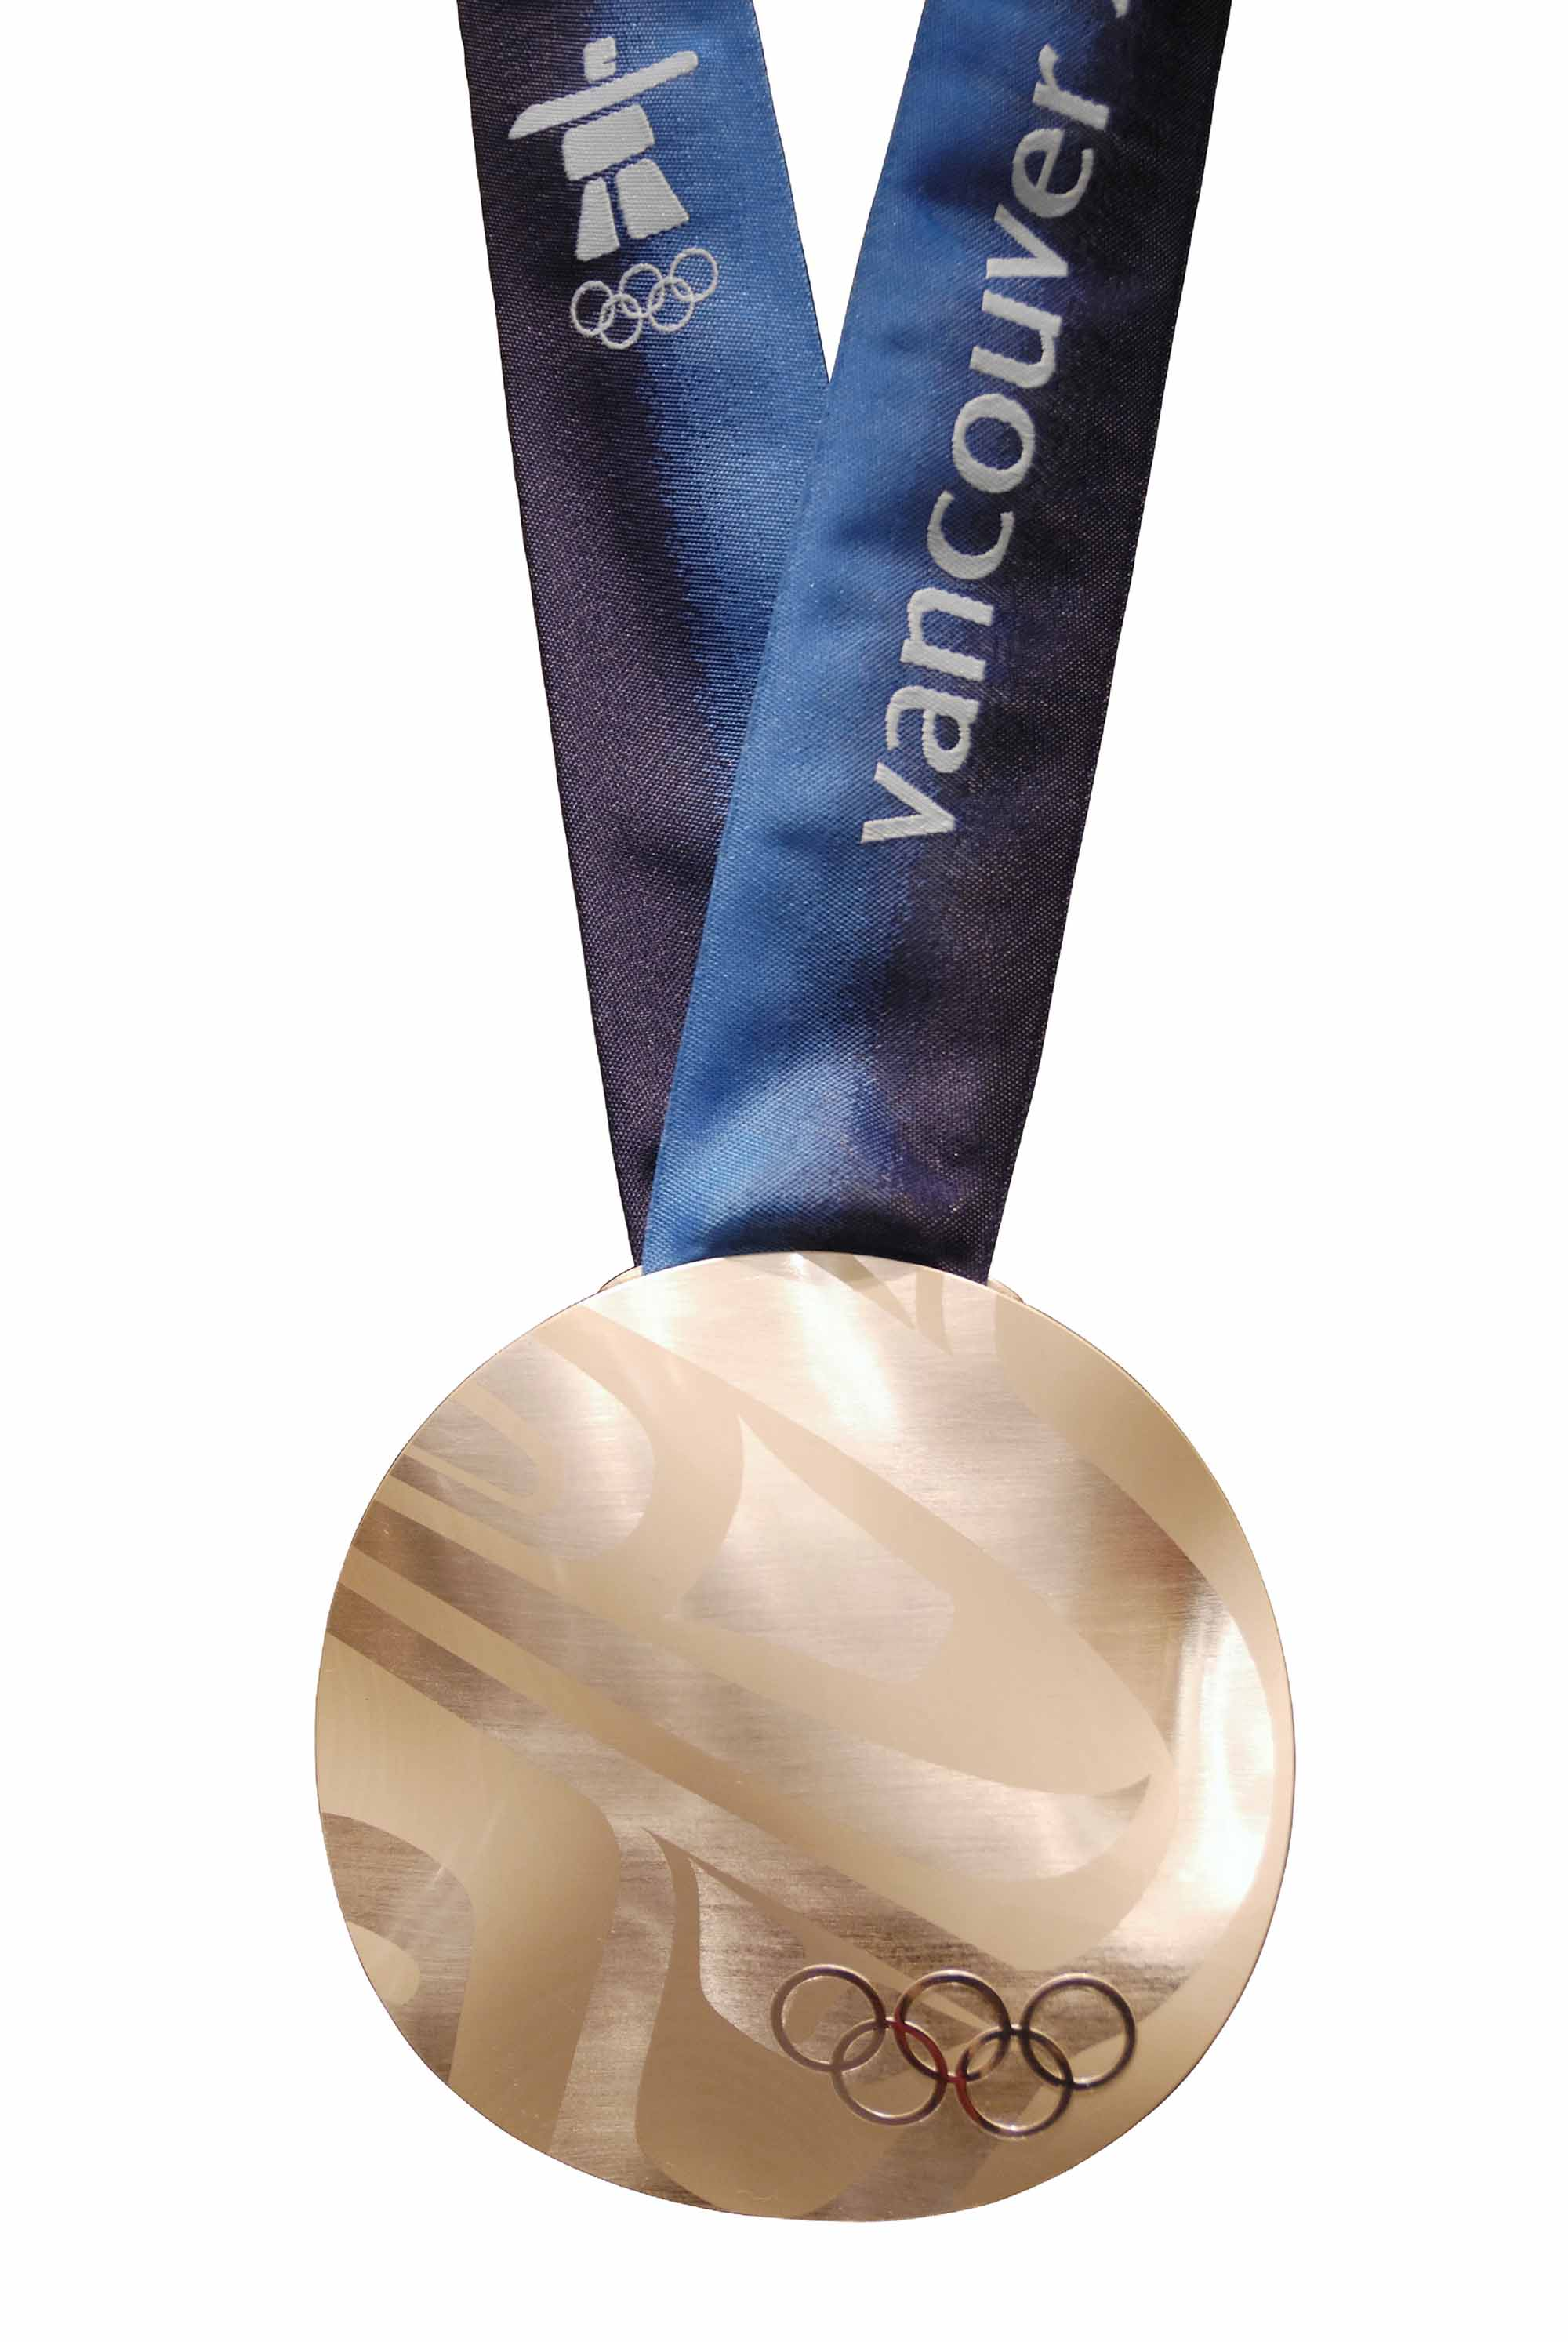 2010 Olympic Silver